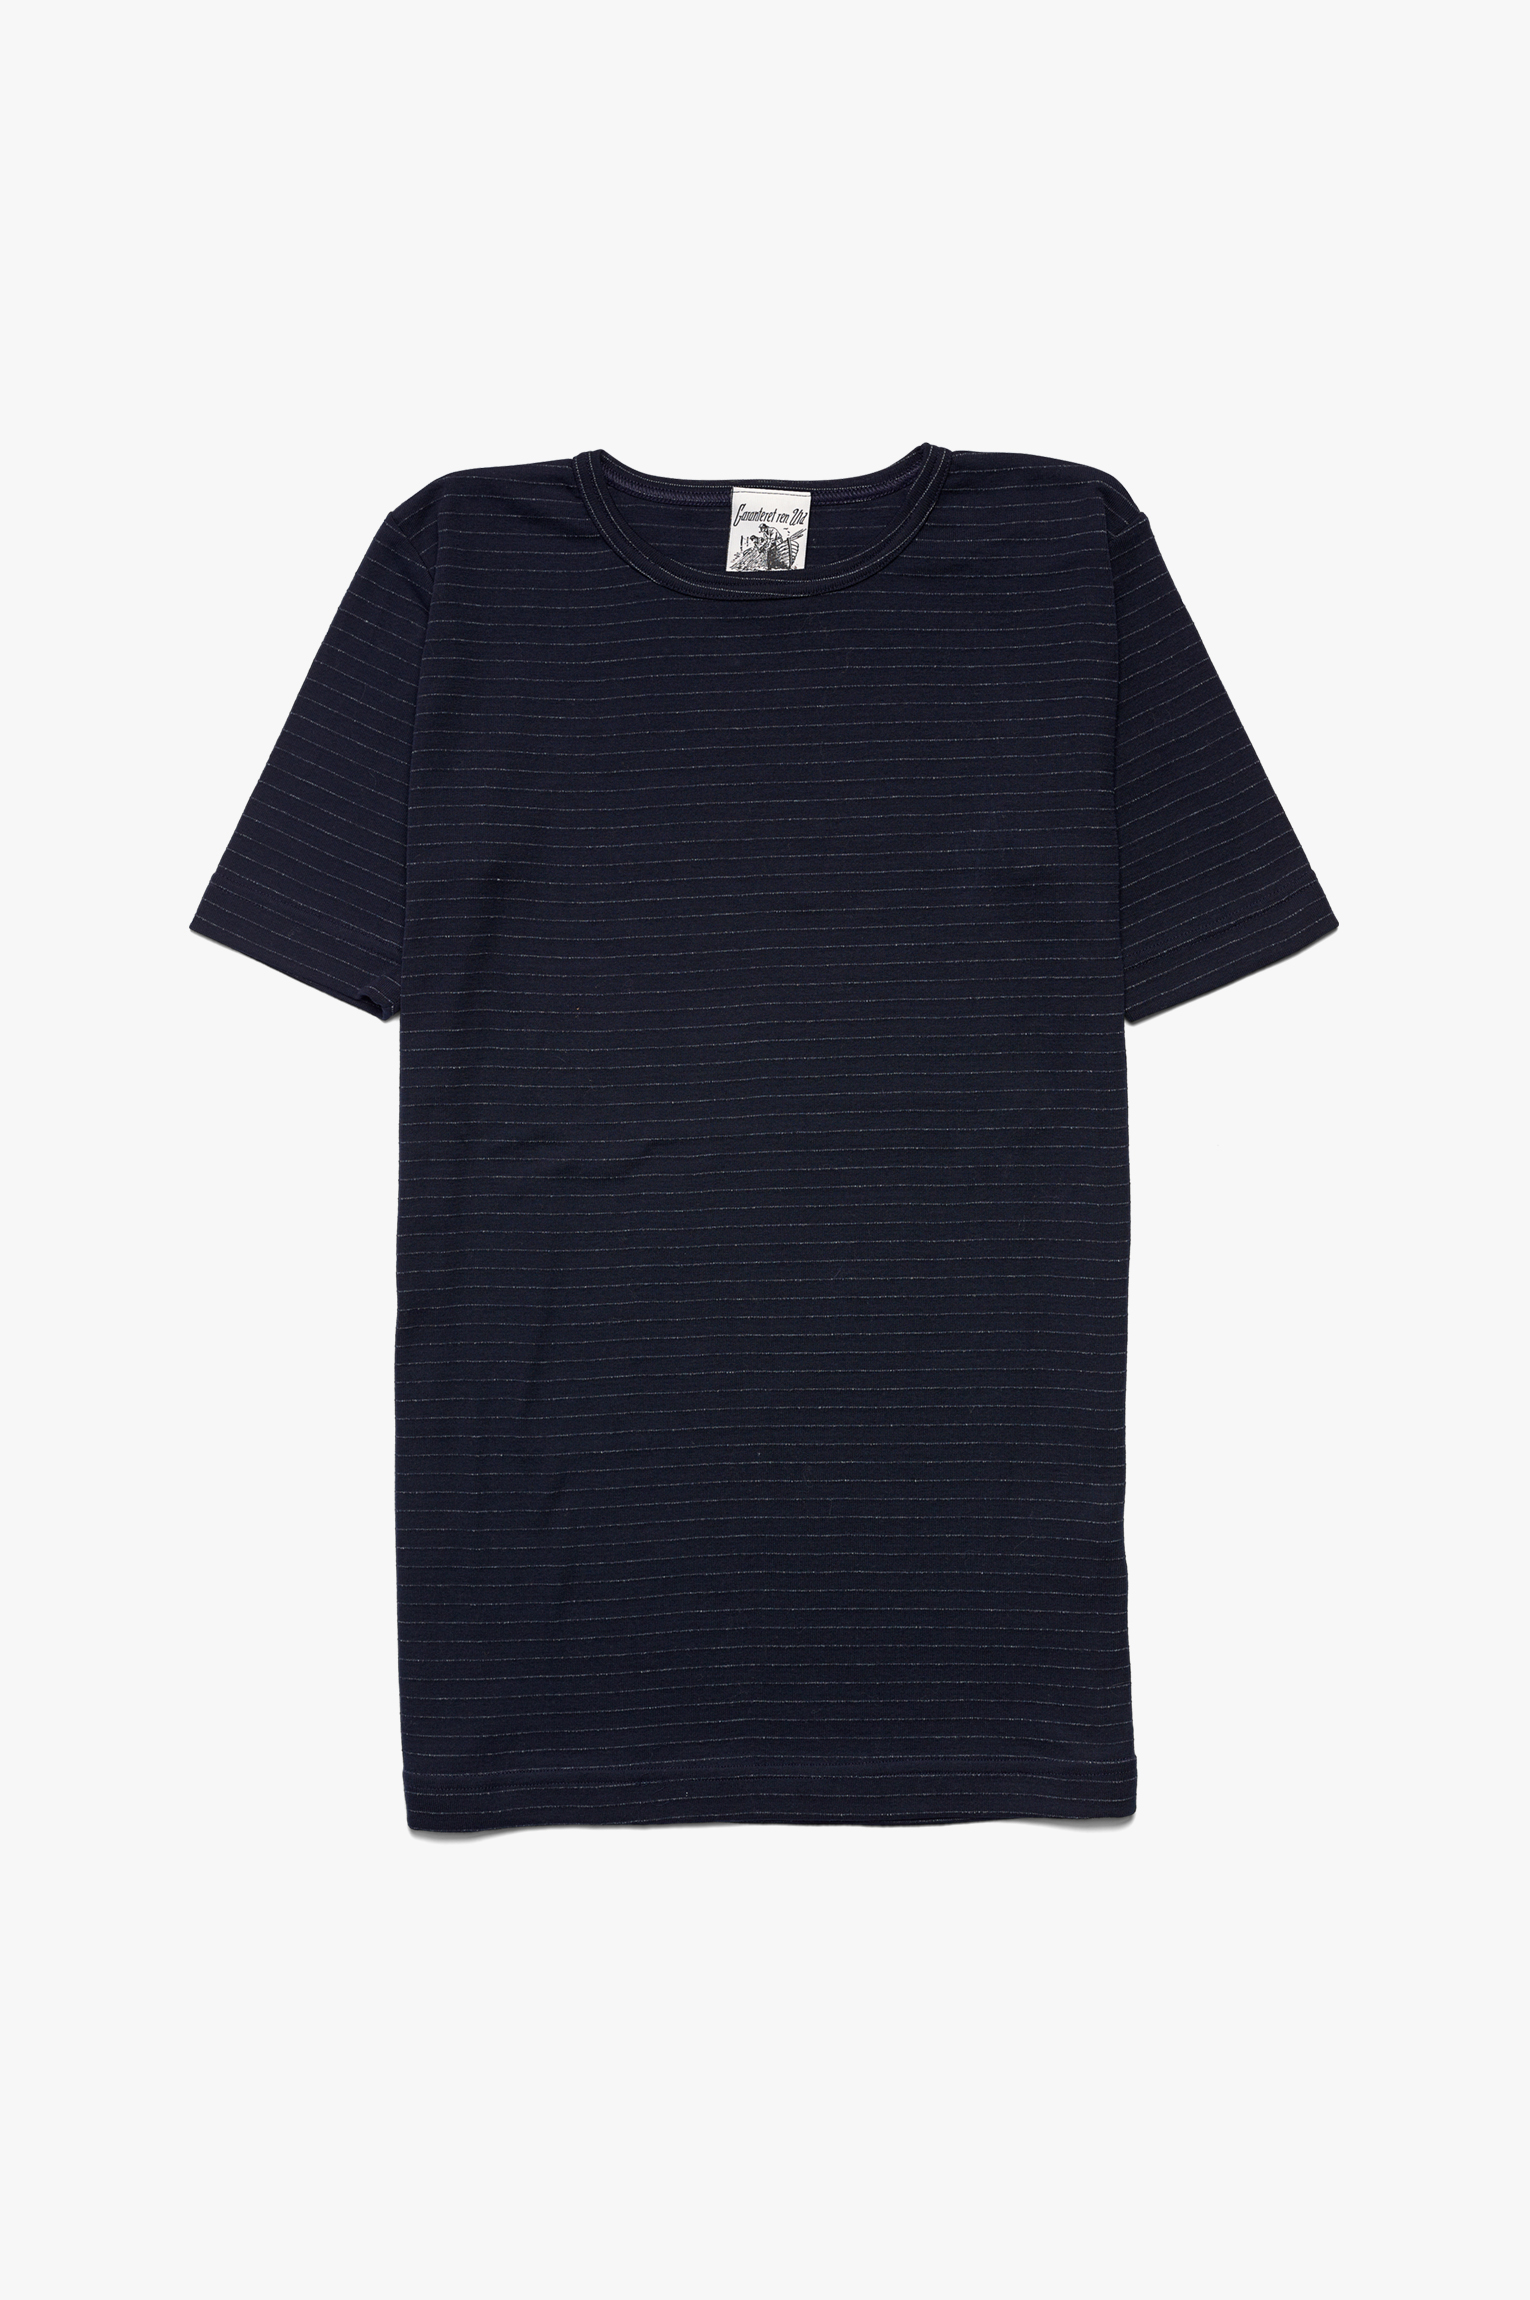 Lemma T-Shirt Navy